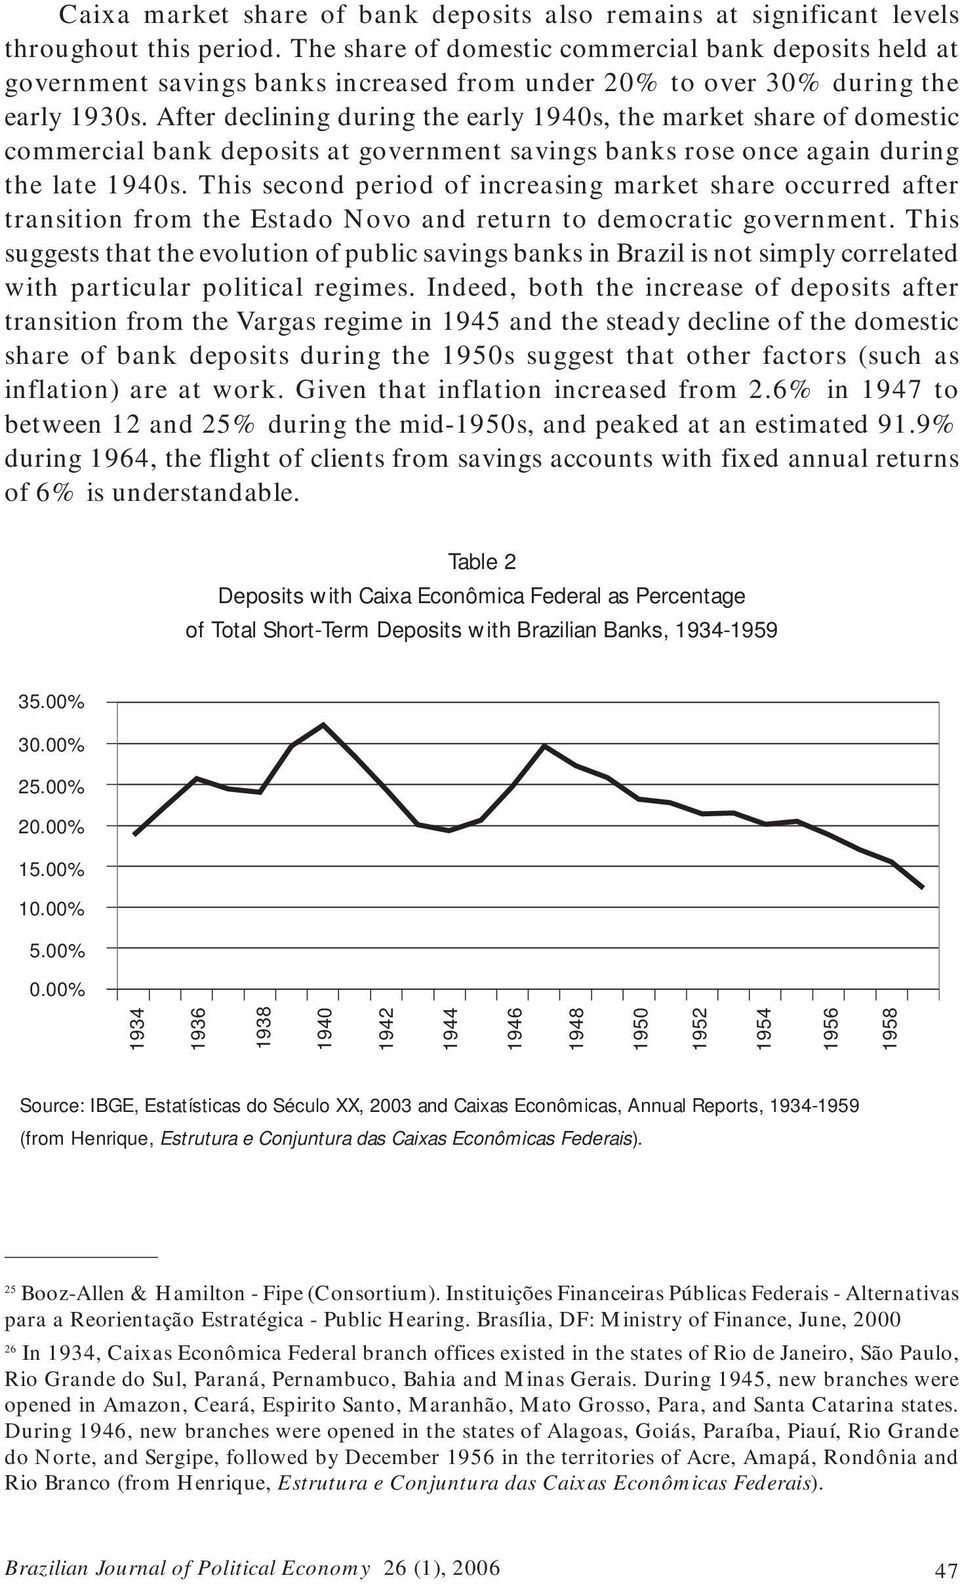 After declining during the early 1940s, the market share of domestic commercial bank deposits at government savings banks rose once again during the late 1940s.